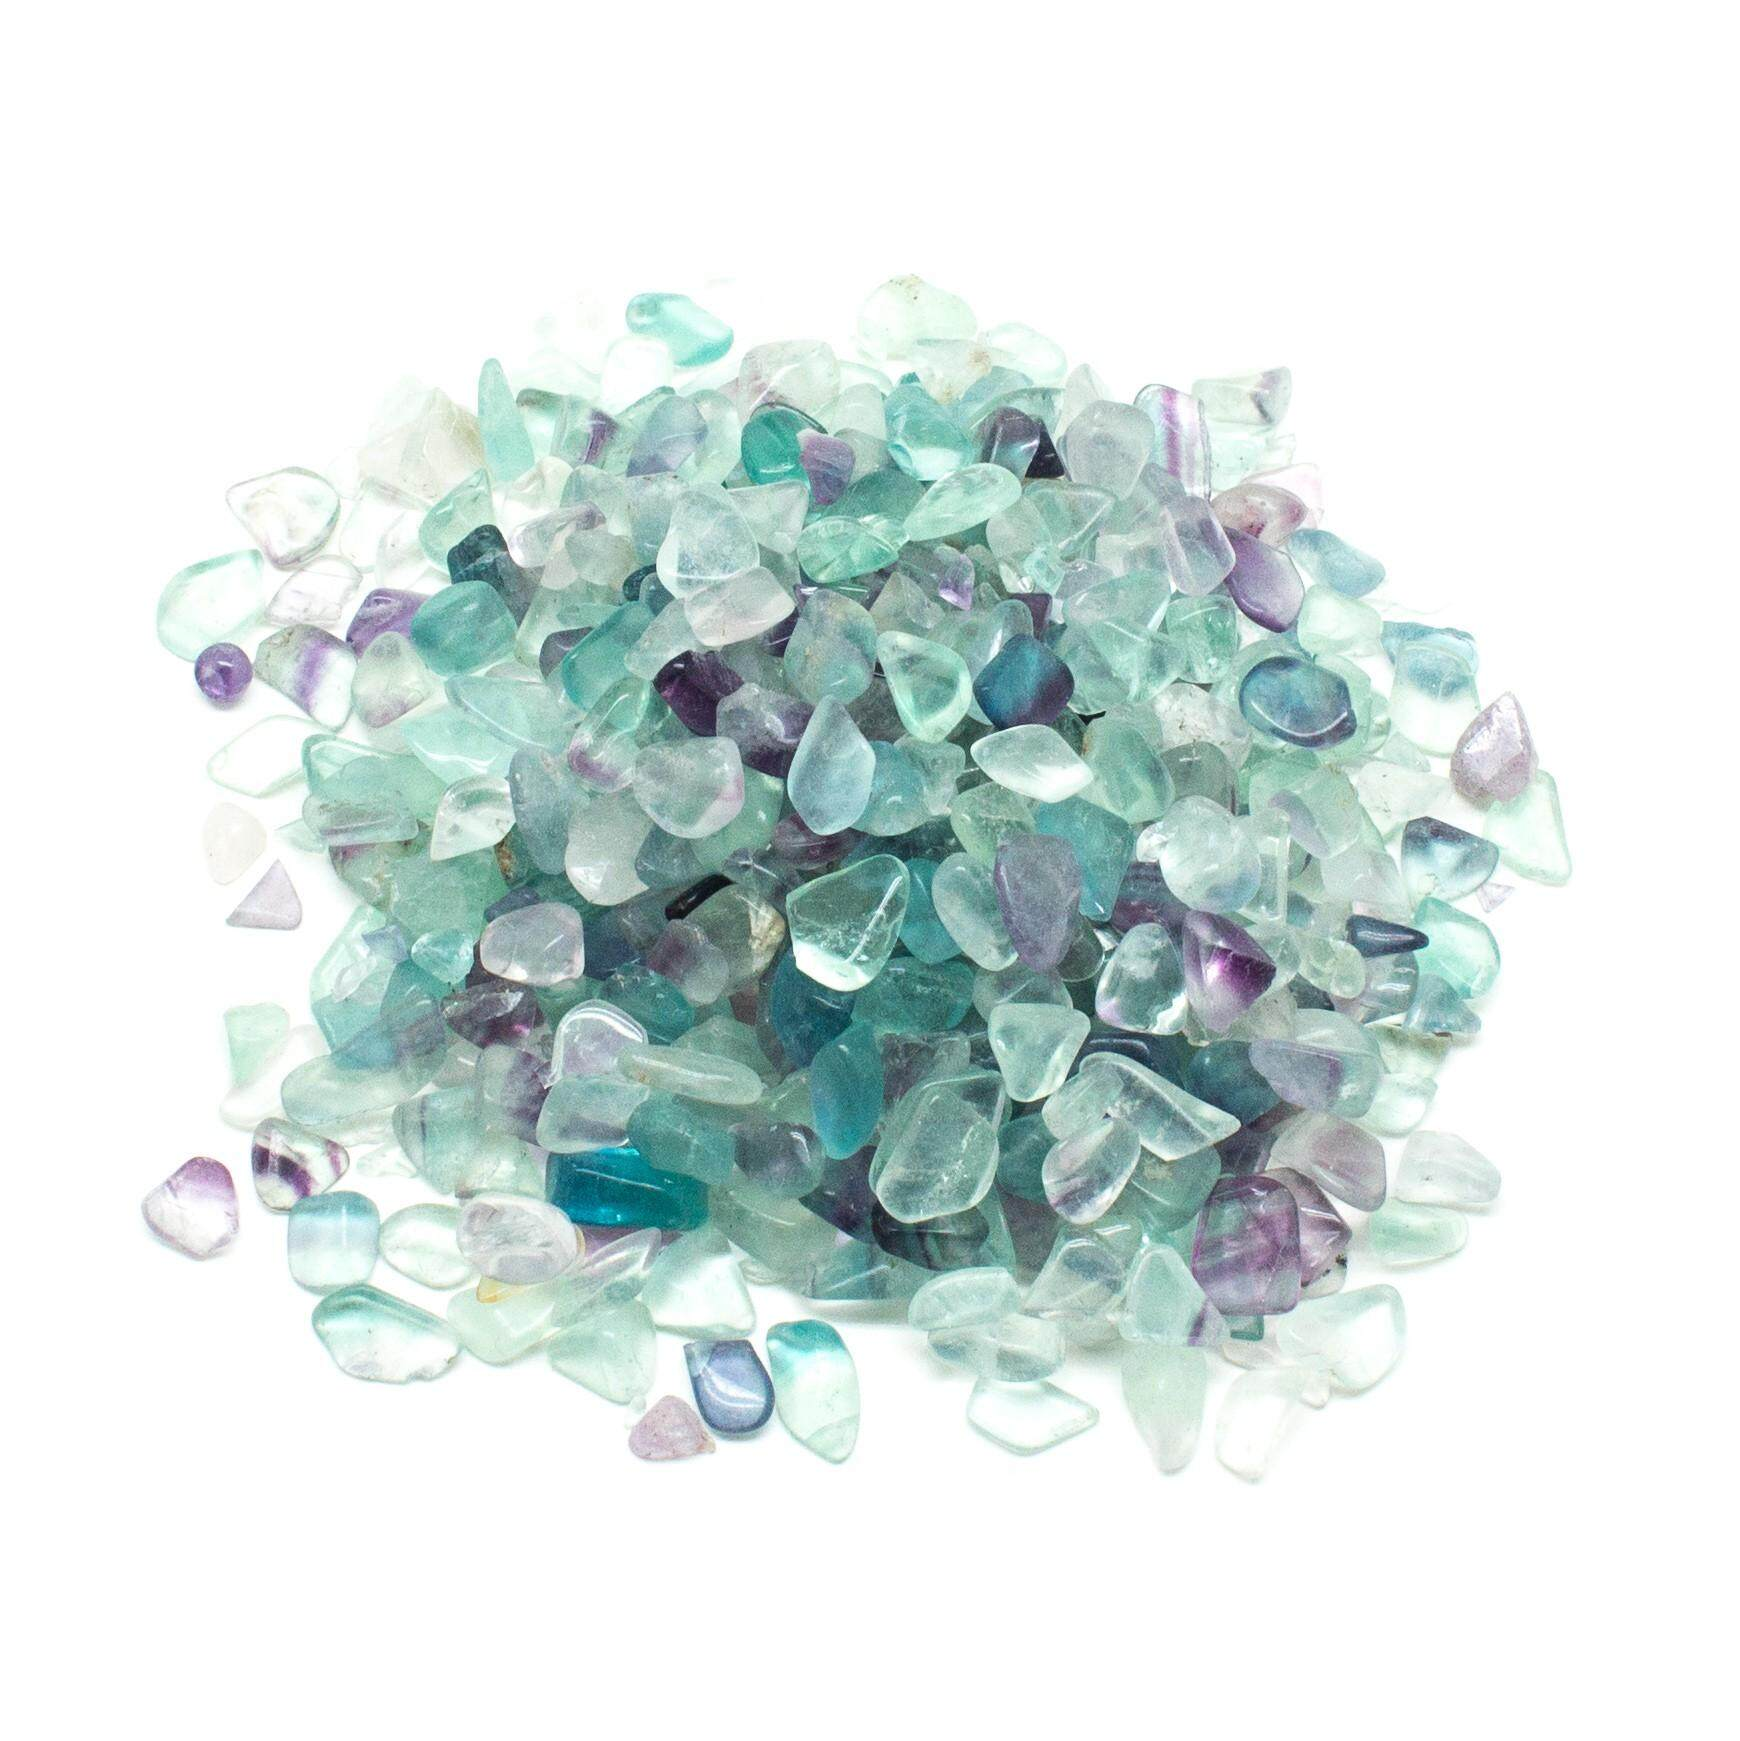 Fluorite Synthetic Quartz Crystal/ Mineral Crystal/ Crystal Stone/ Healing Material Crafts